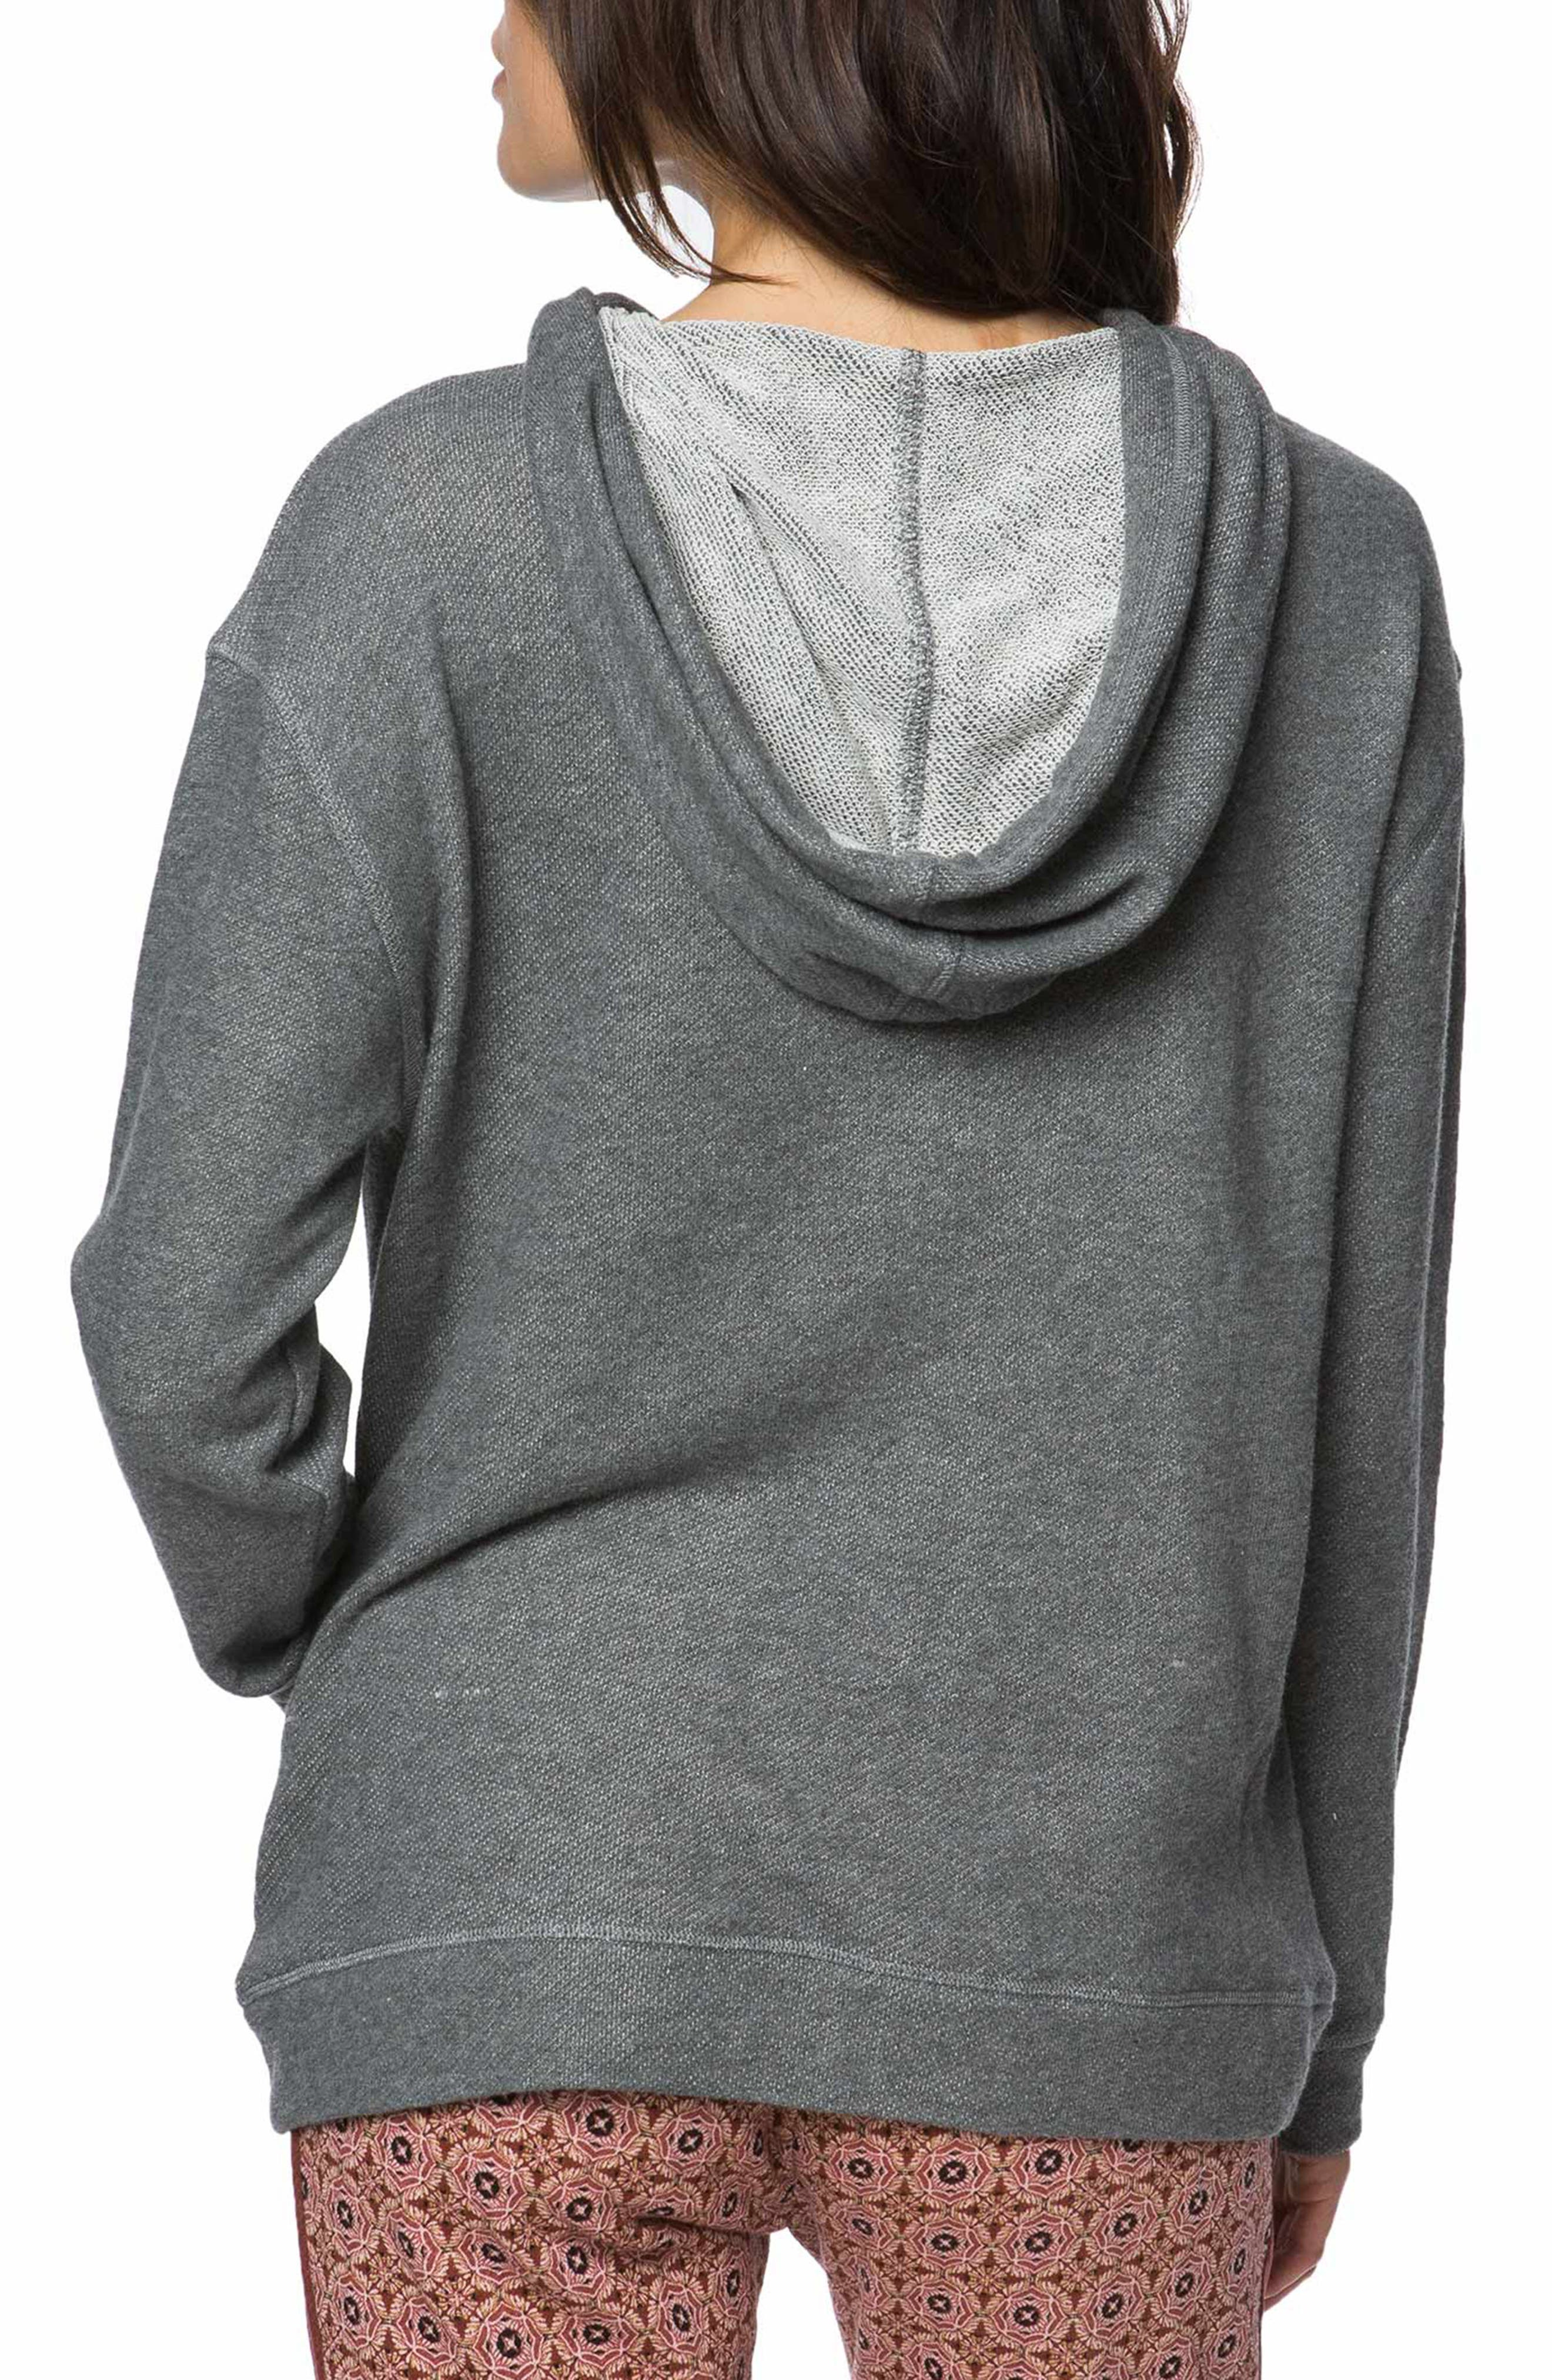 Brianne Embroidered Hoodie,                             Alternate thumbnail 2, color,                             Heather Grey - Hgr